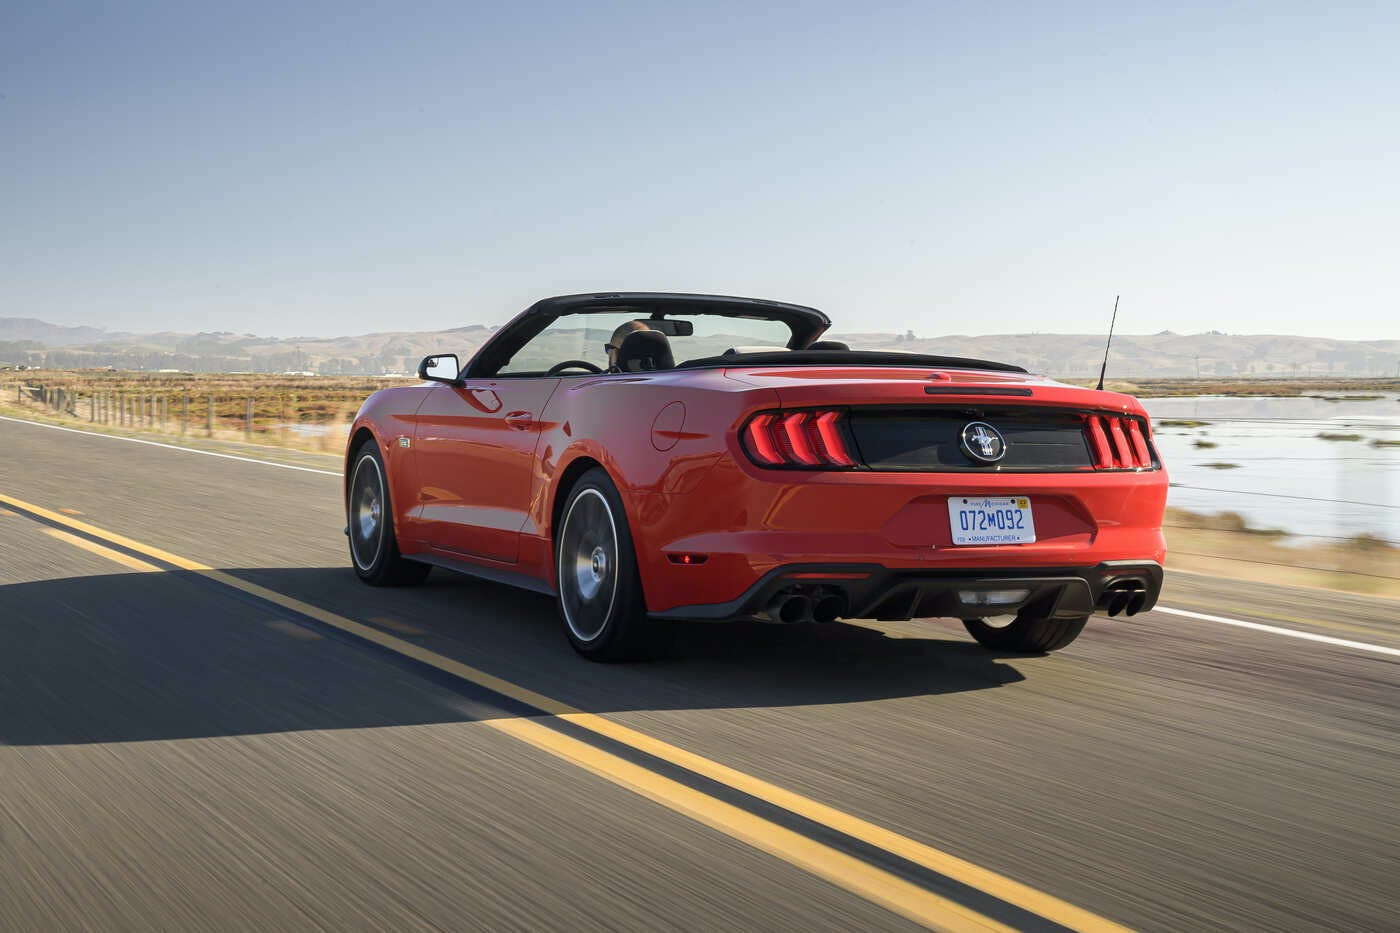 2020 ford mustang reviews pricing pictures truecar 2020 ford mustang reviews pricing